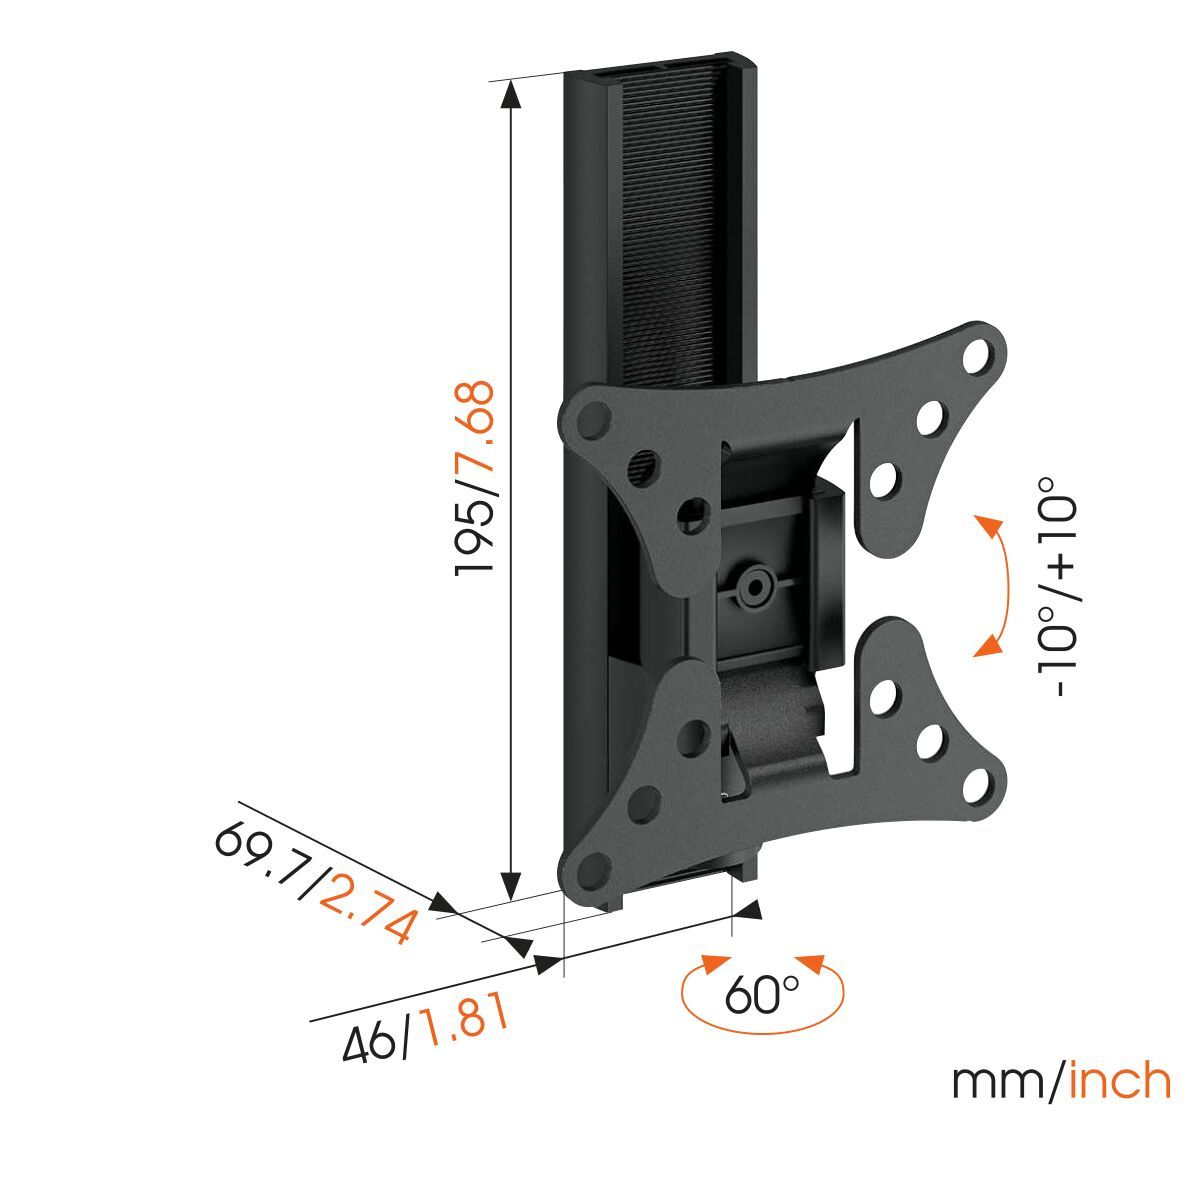 Vogel's WALL 1020 Full-Motion TV Wall Mount - Suitable for 17 up to 26 inch TVs - Limited motion (up to 60°) - Tilt -10°/+10° - Dimensions